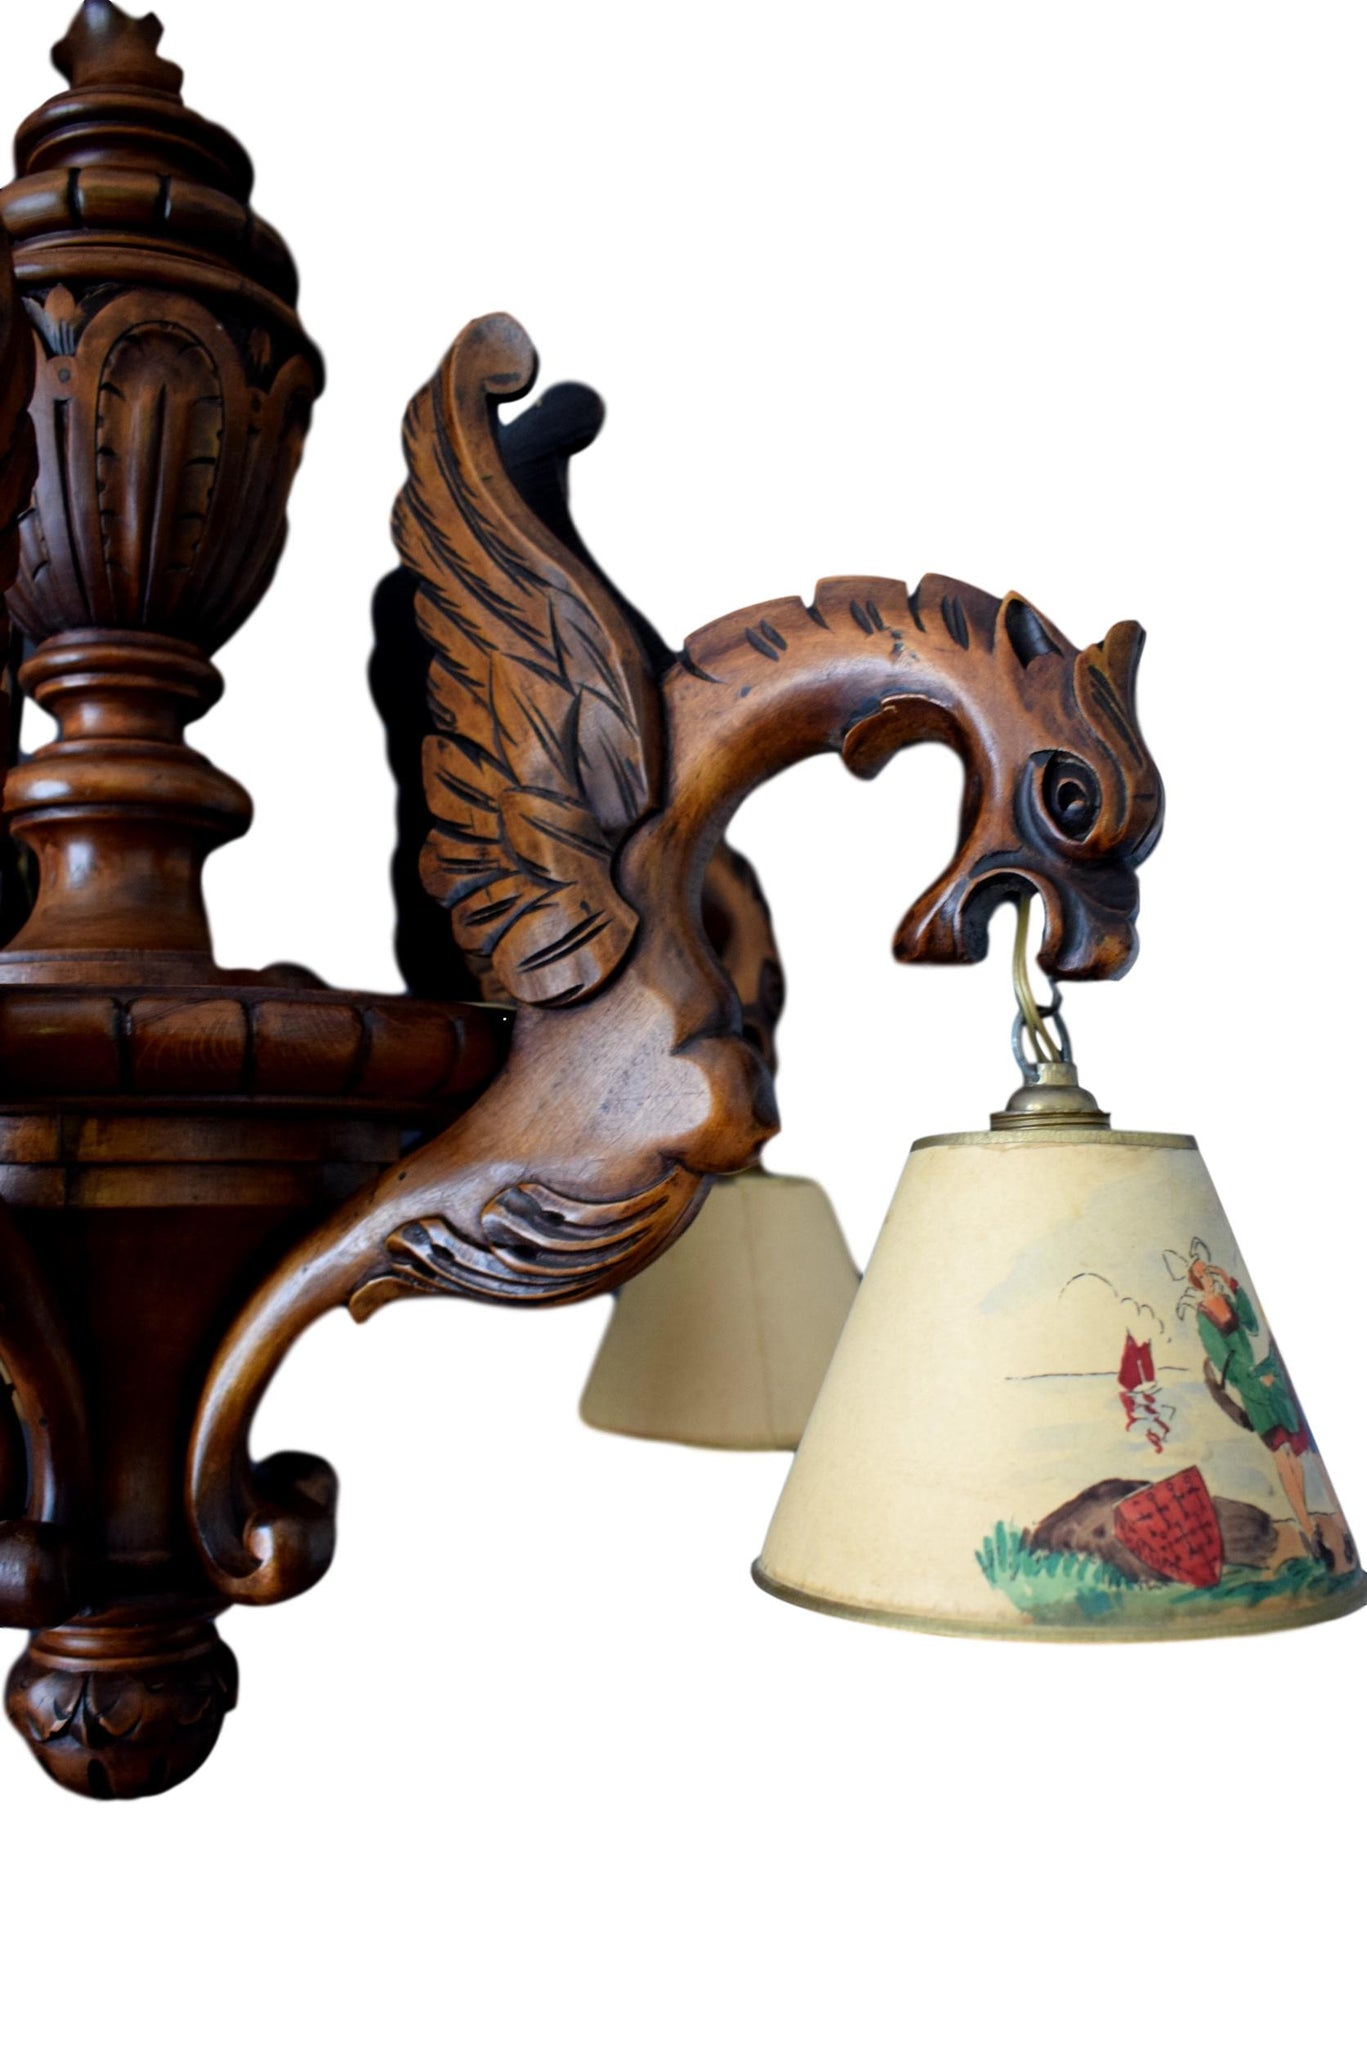 French Gothic Hand Carved Wood Large Chandelier - Victorian Ceiling Light - Griffin Dragon 5 Lights - Black Forest Antique Chandelier